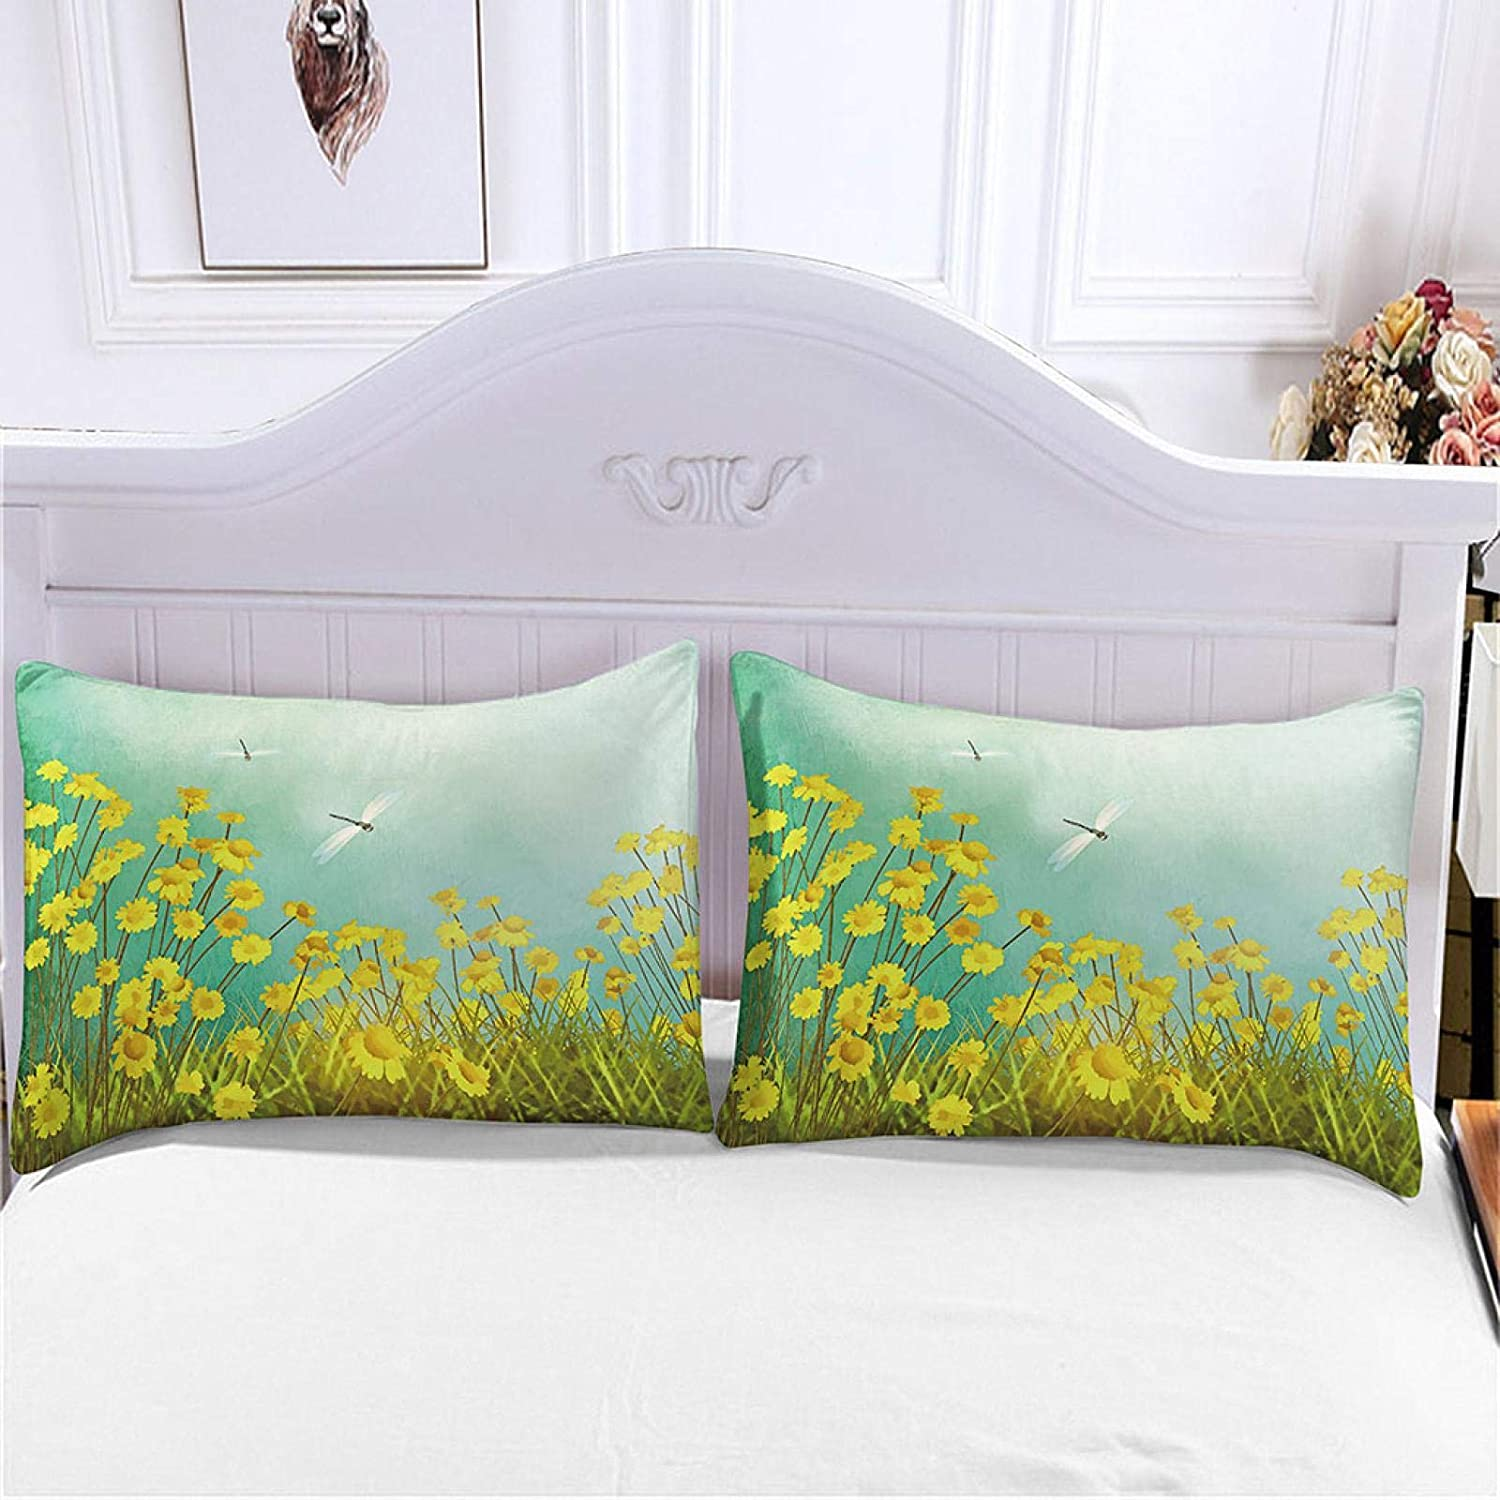 HKDGHTHJ Bedroom Decoration Microfiber Max 85% OFF Insect Flower Yellow 135 Free shipping New